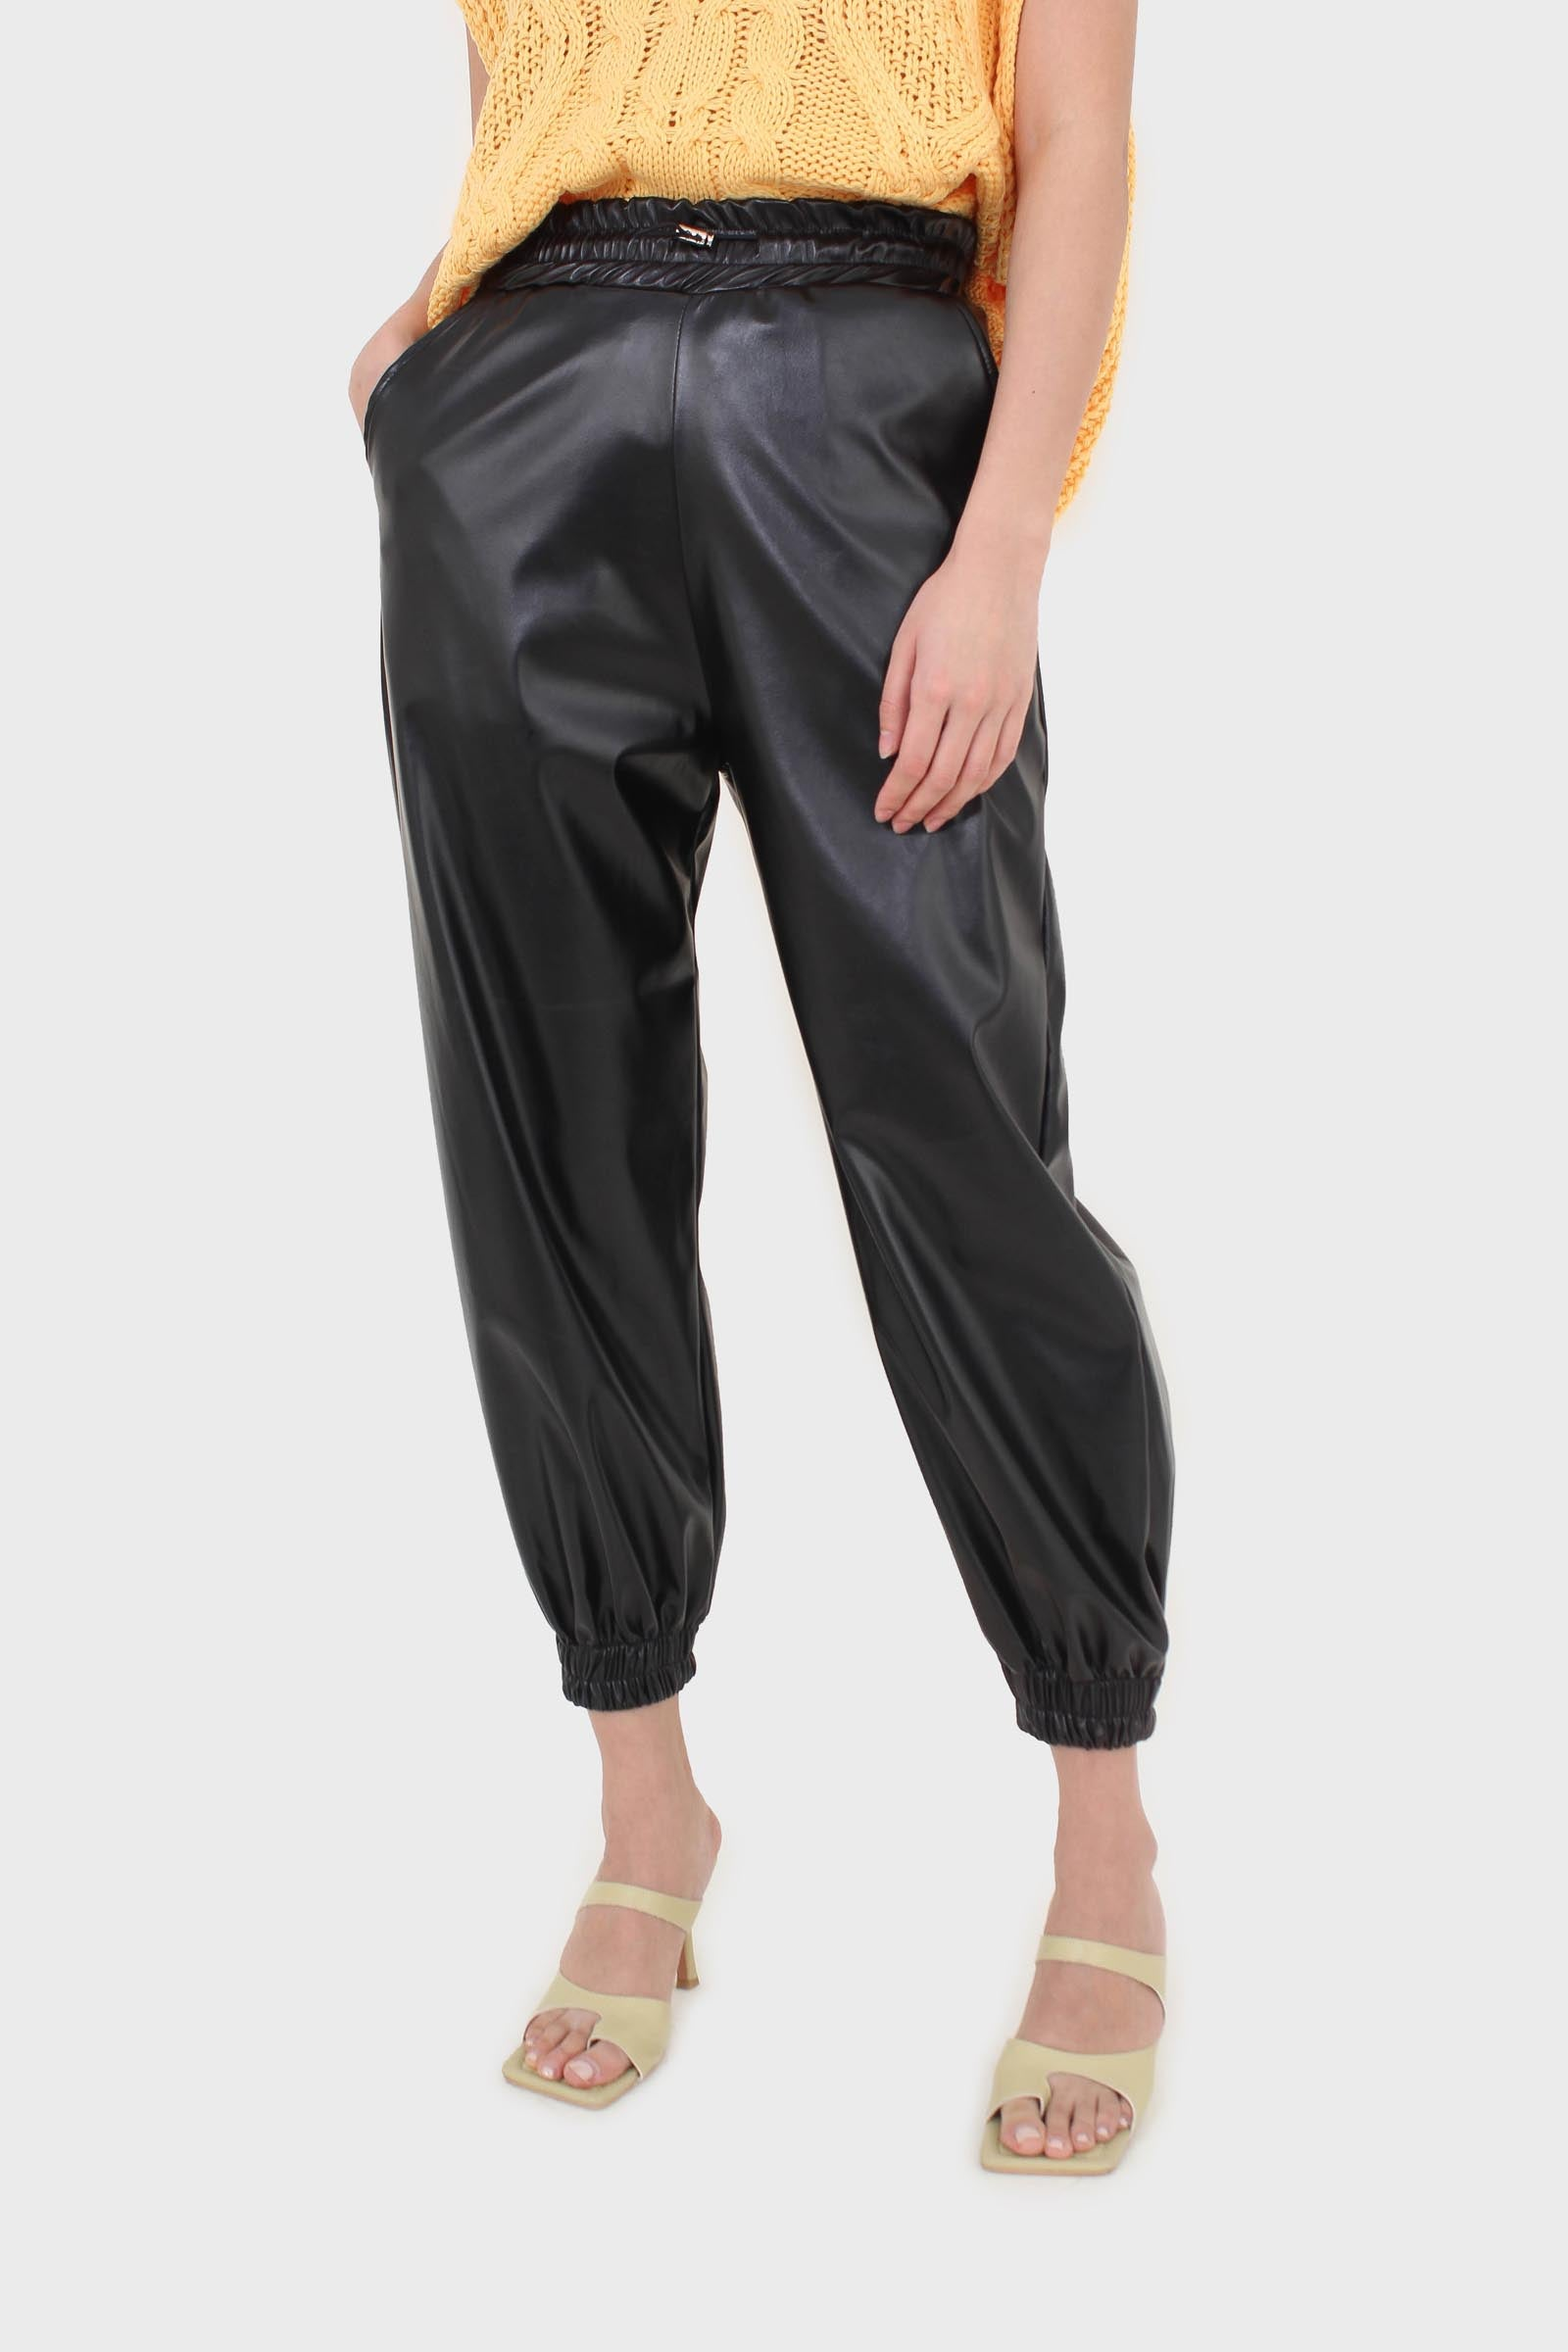 Black vegan leather jogging trousers4